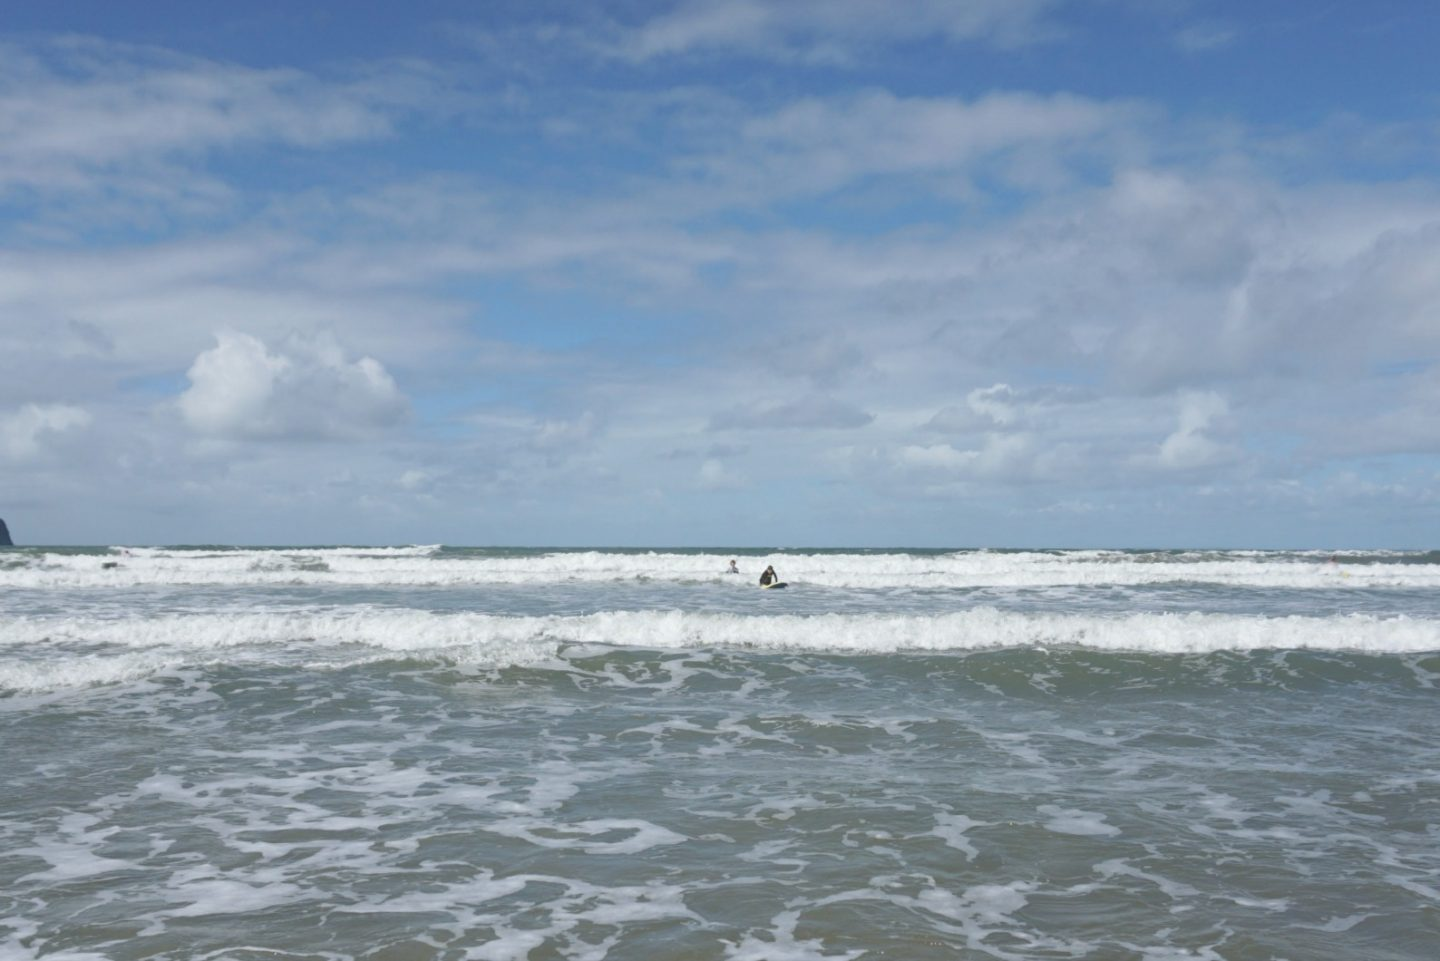 Family Surf Lesson at Rhosssili Bay www.extraordinarychaos.com